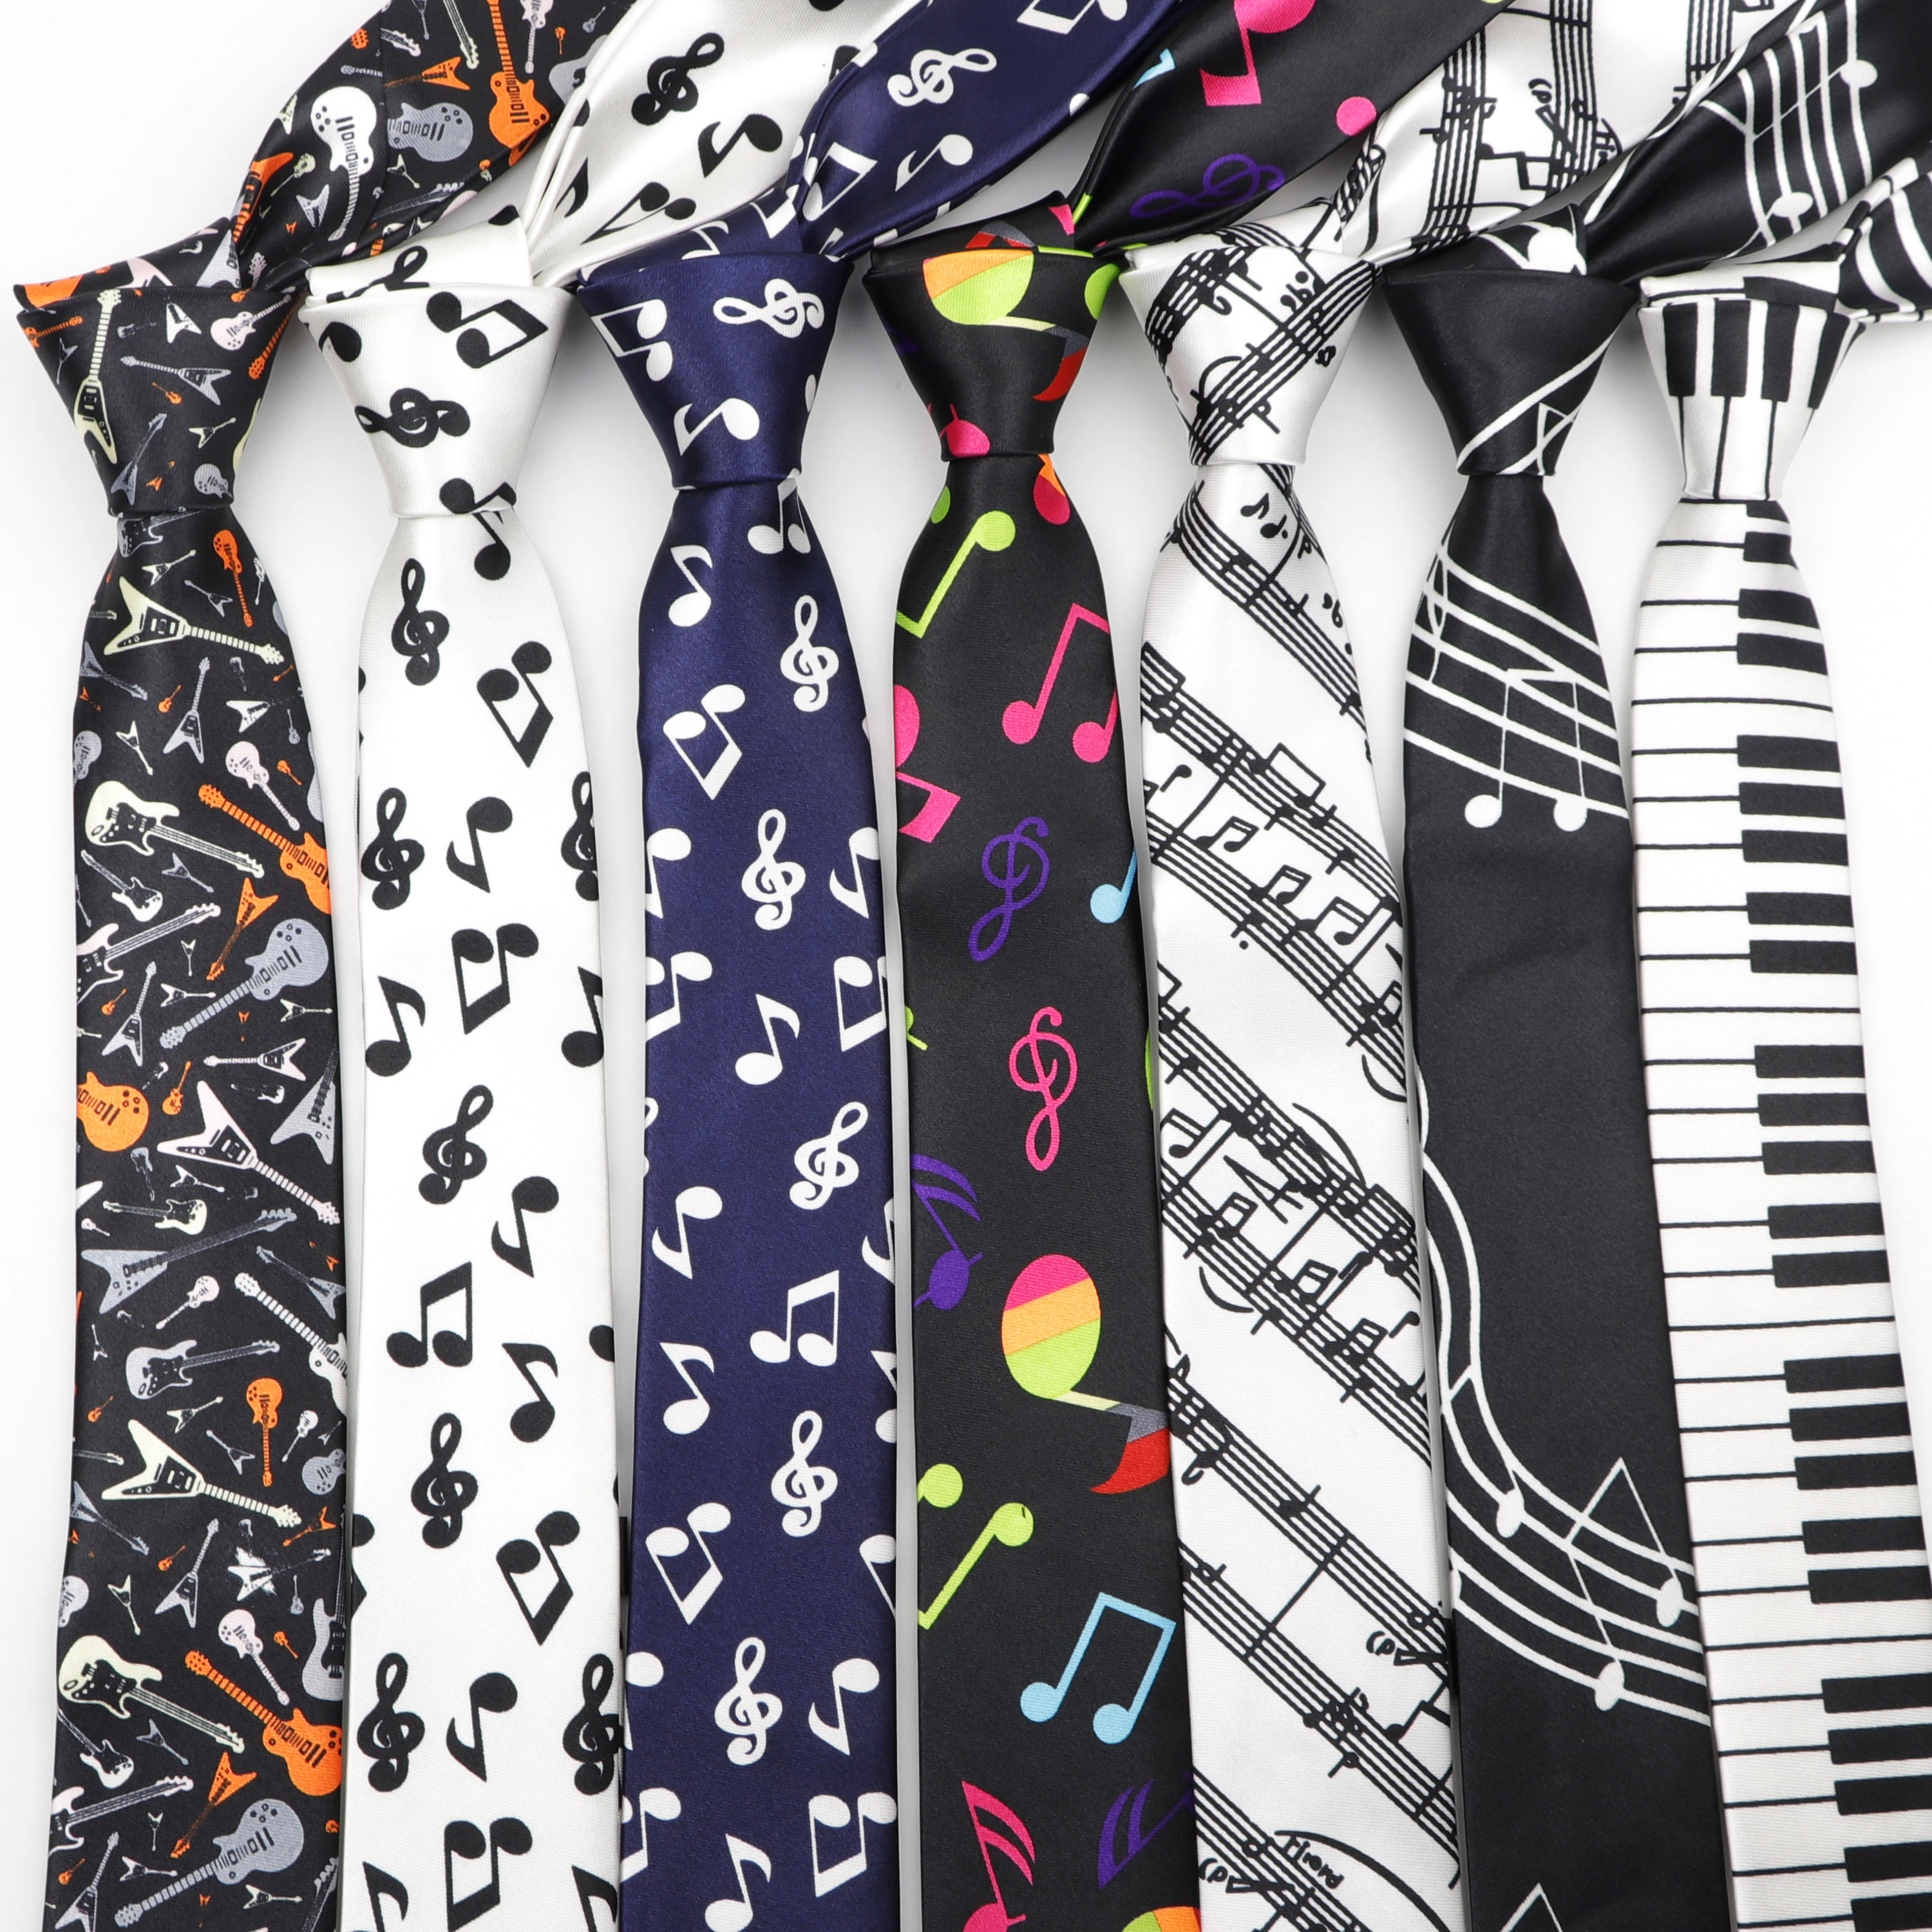 Classic Fashion Men's Skinny Tie Colorful Musical Notes Printed Piano Guitar Polyester 5cm Width Necktie Party Gift Accessory